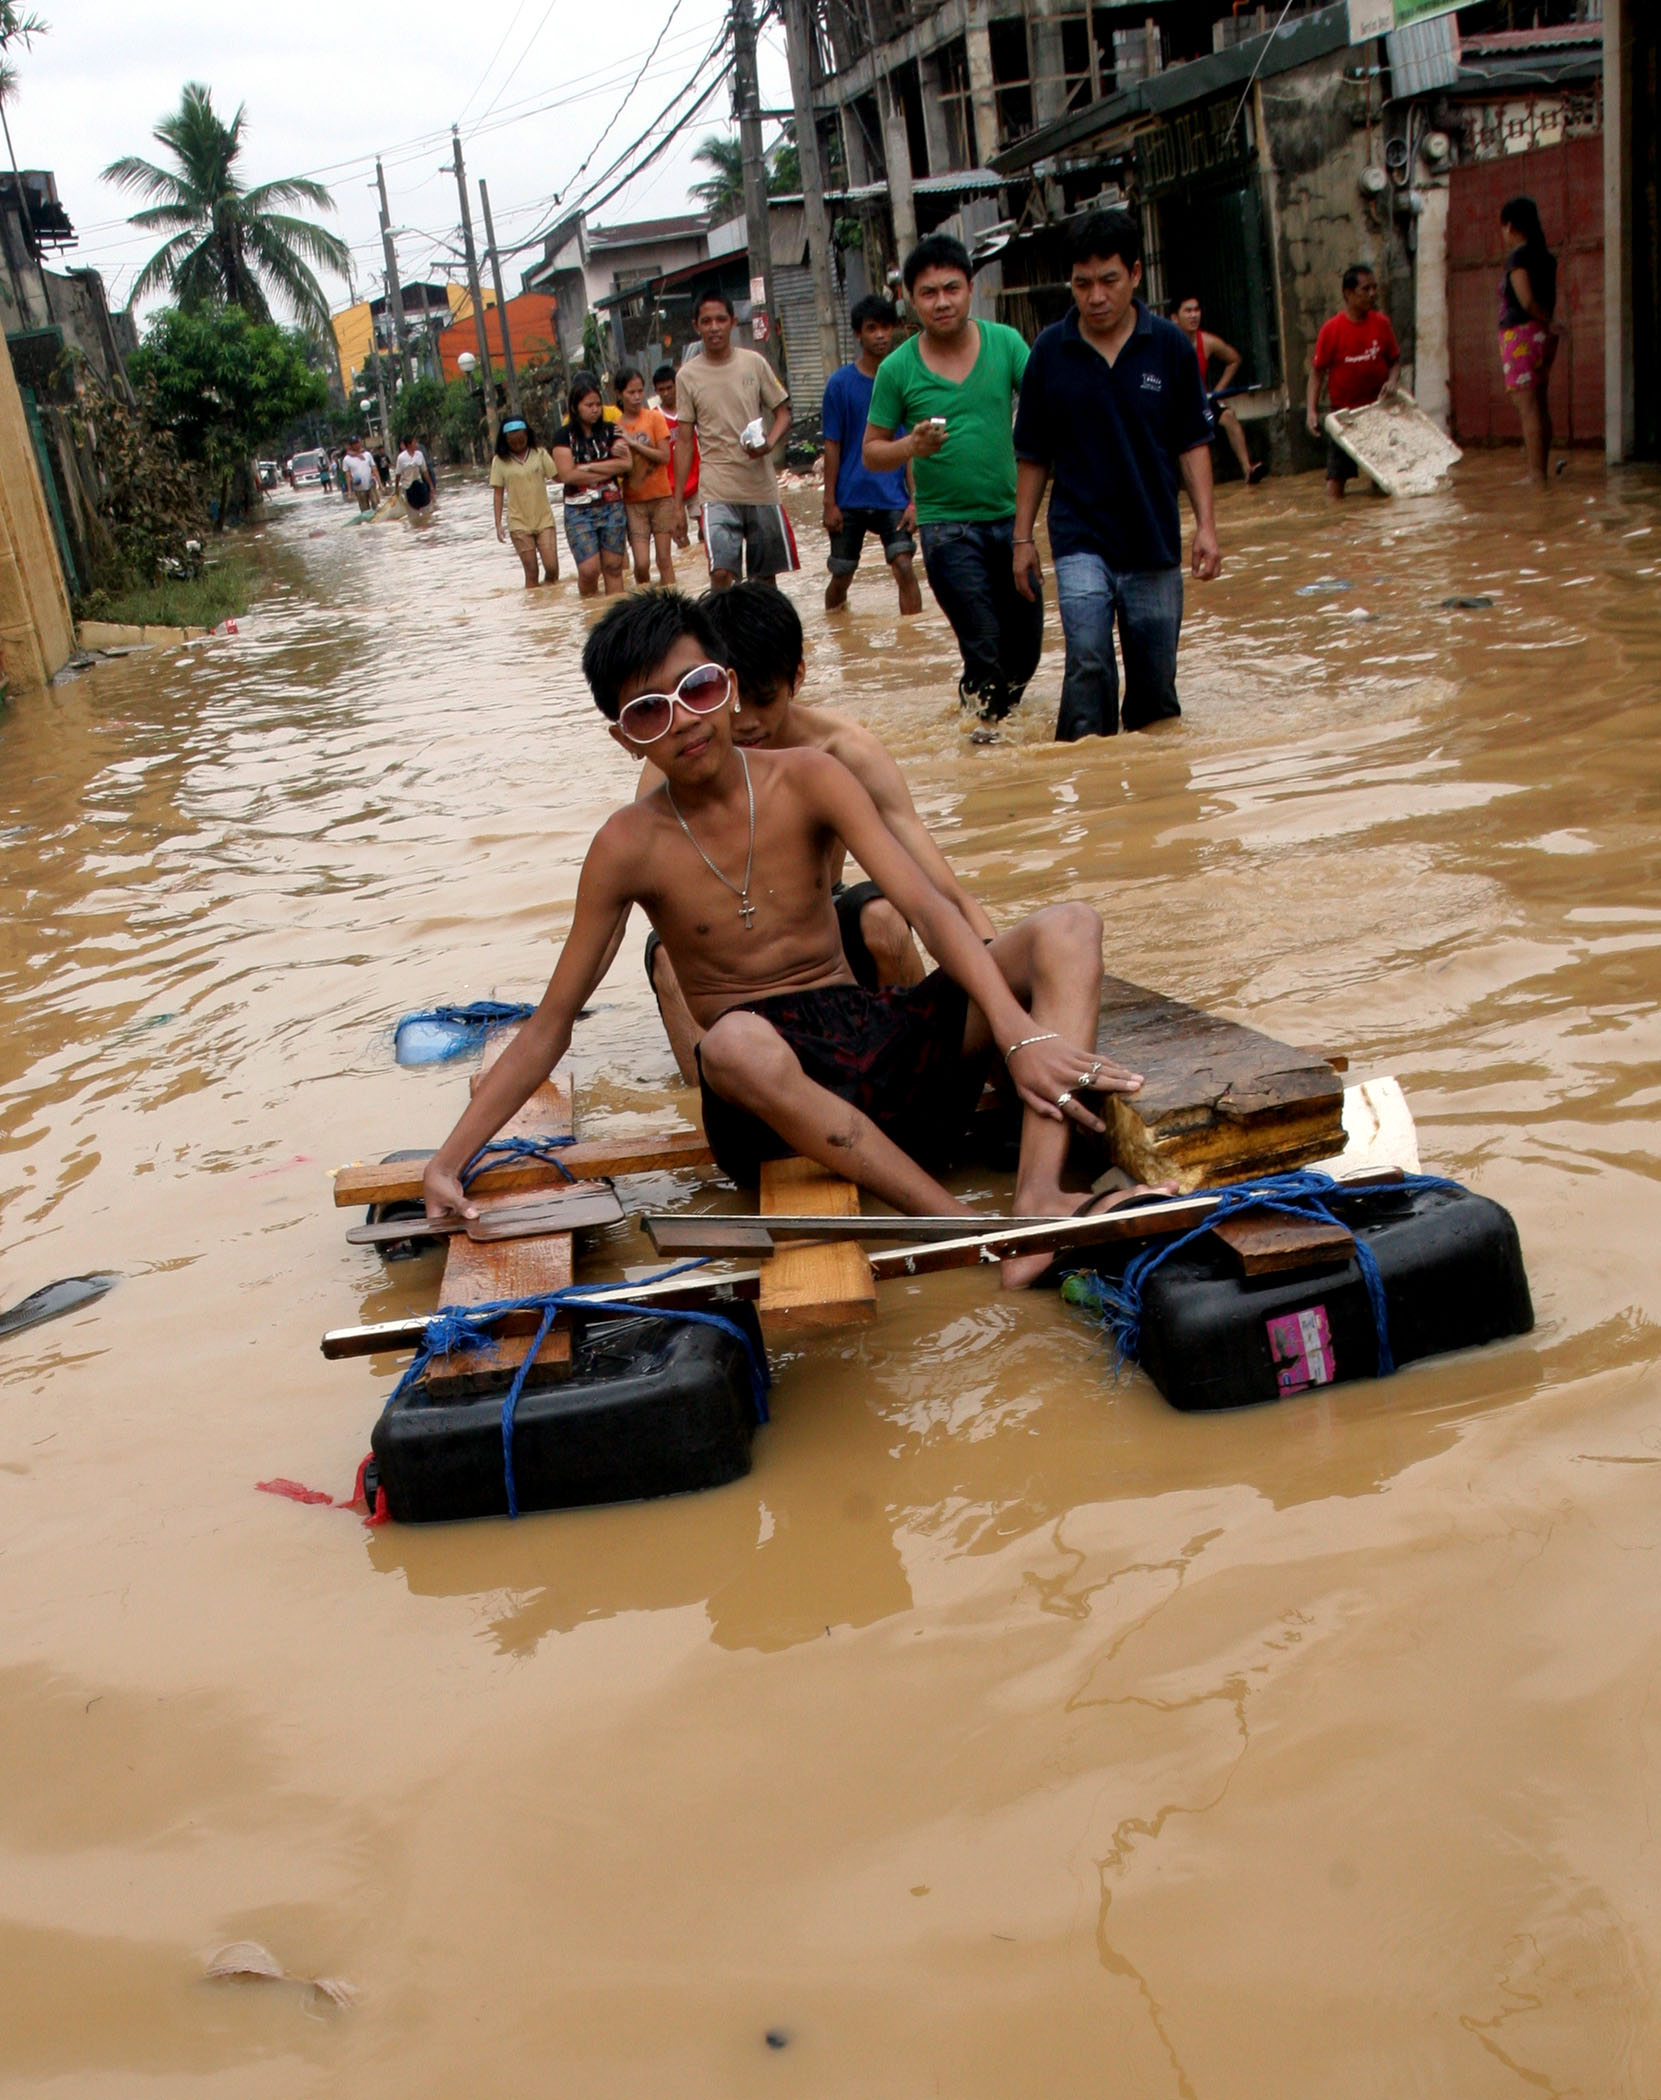 Manila - Filipino teen-aged boys play on stagnant flood waters that still submerge large areas in Manila, a month after tropical storm Ketsana dumped heavy rains. Government is now struggling to cotain an outbreak of leptospirosis, a deadly flood-borne ba